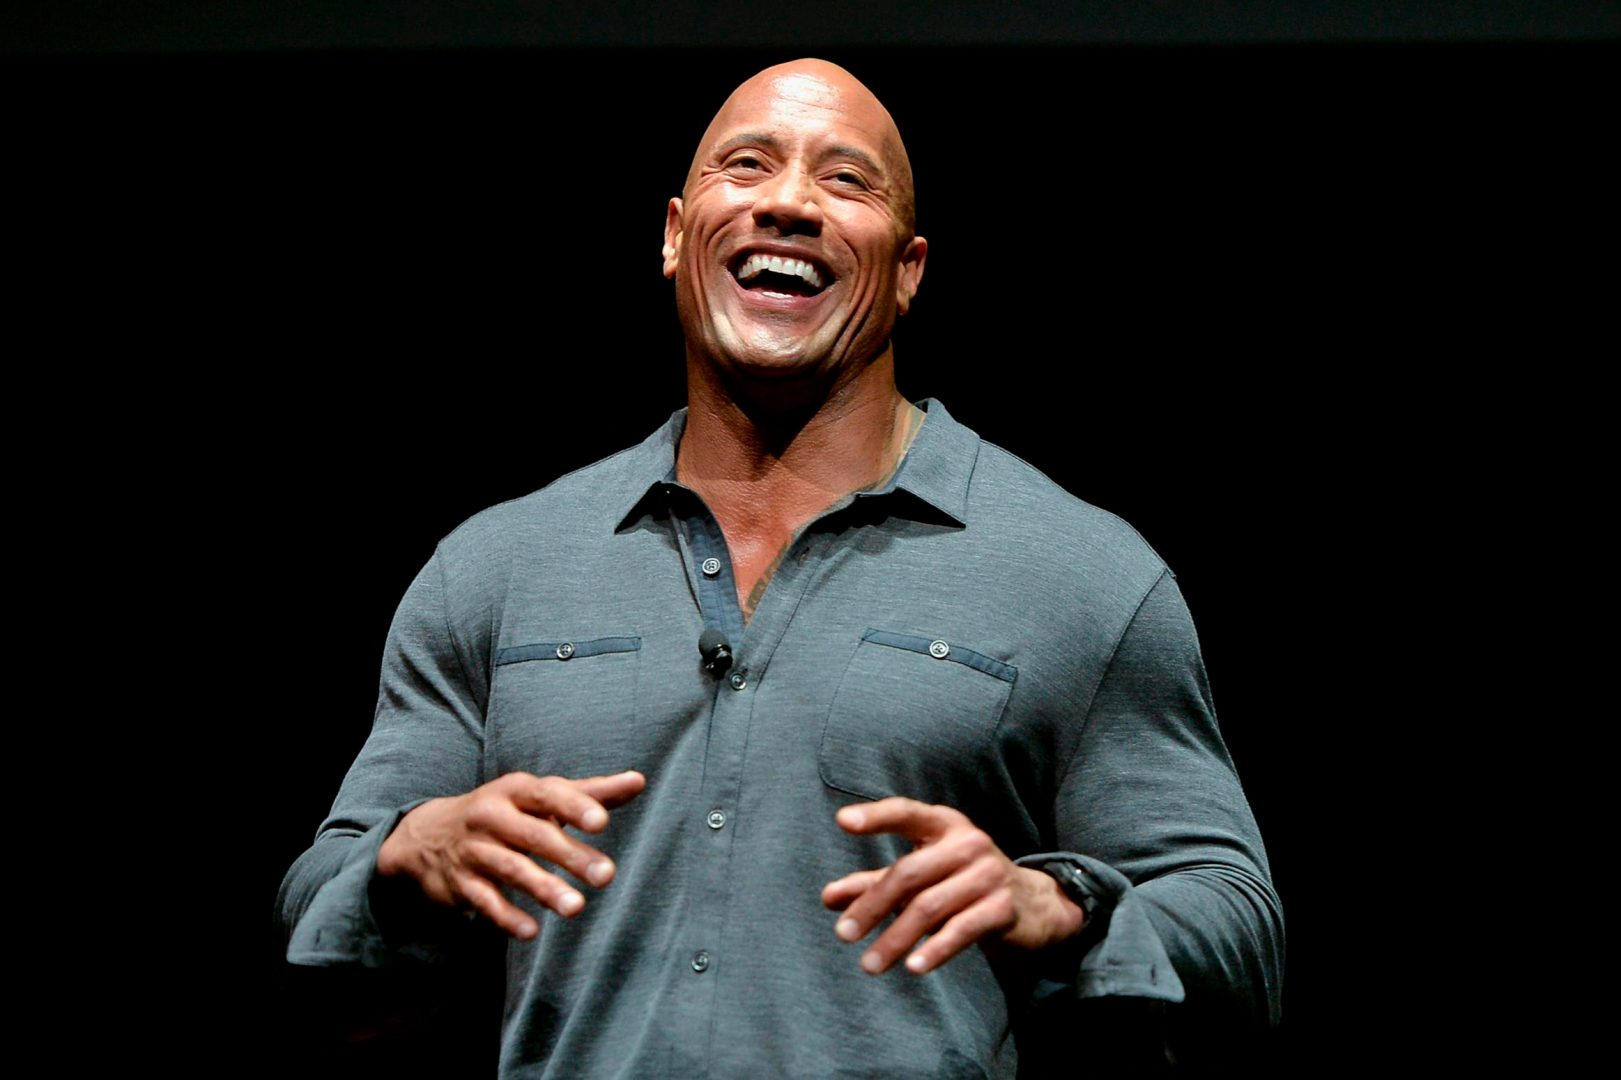 El actor Dwayne Johnson, la roca